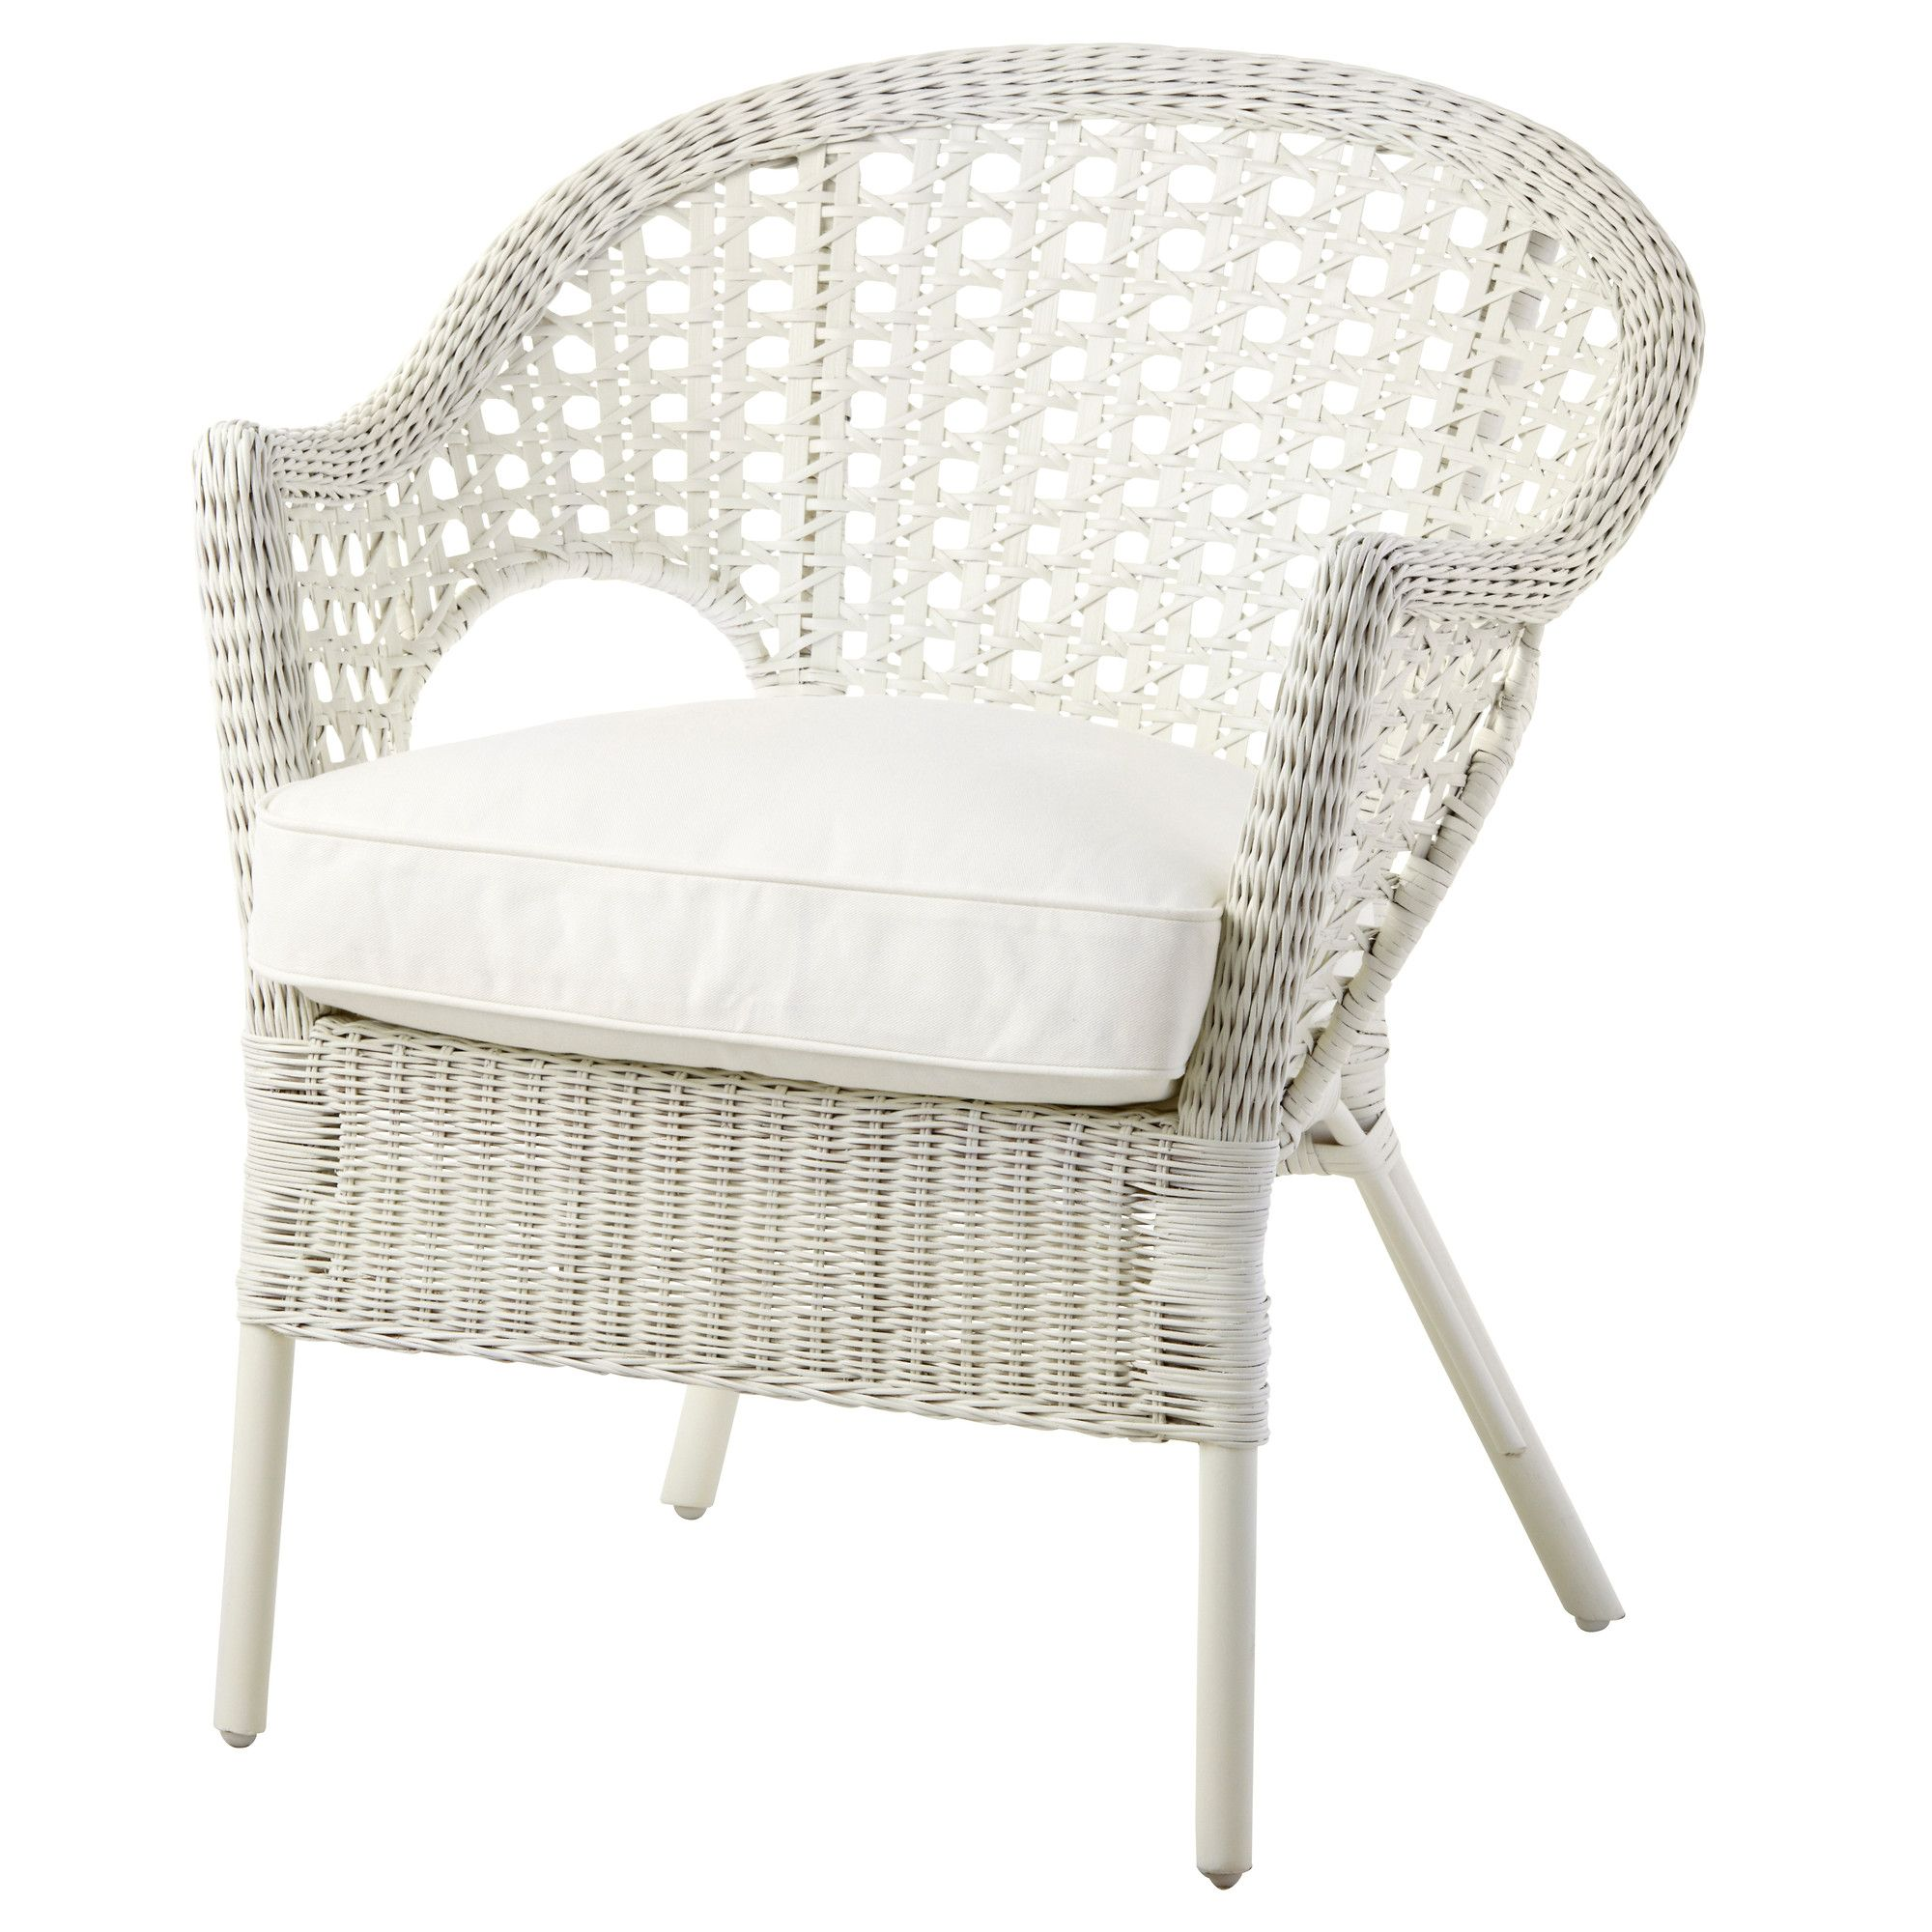 Ikea Rattan Chair Finntorp Djupvik Armchair With Cushion White